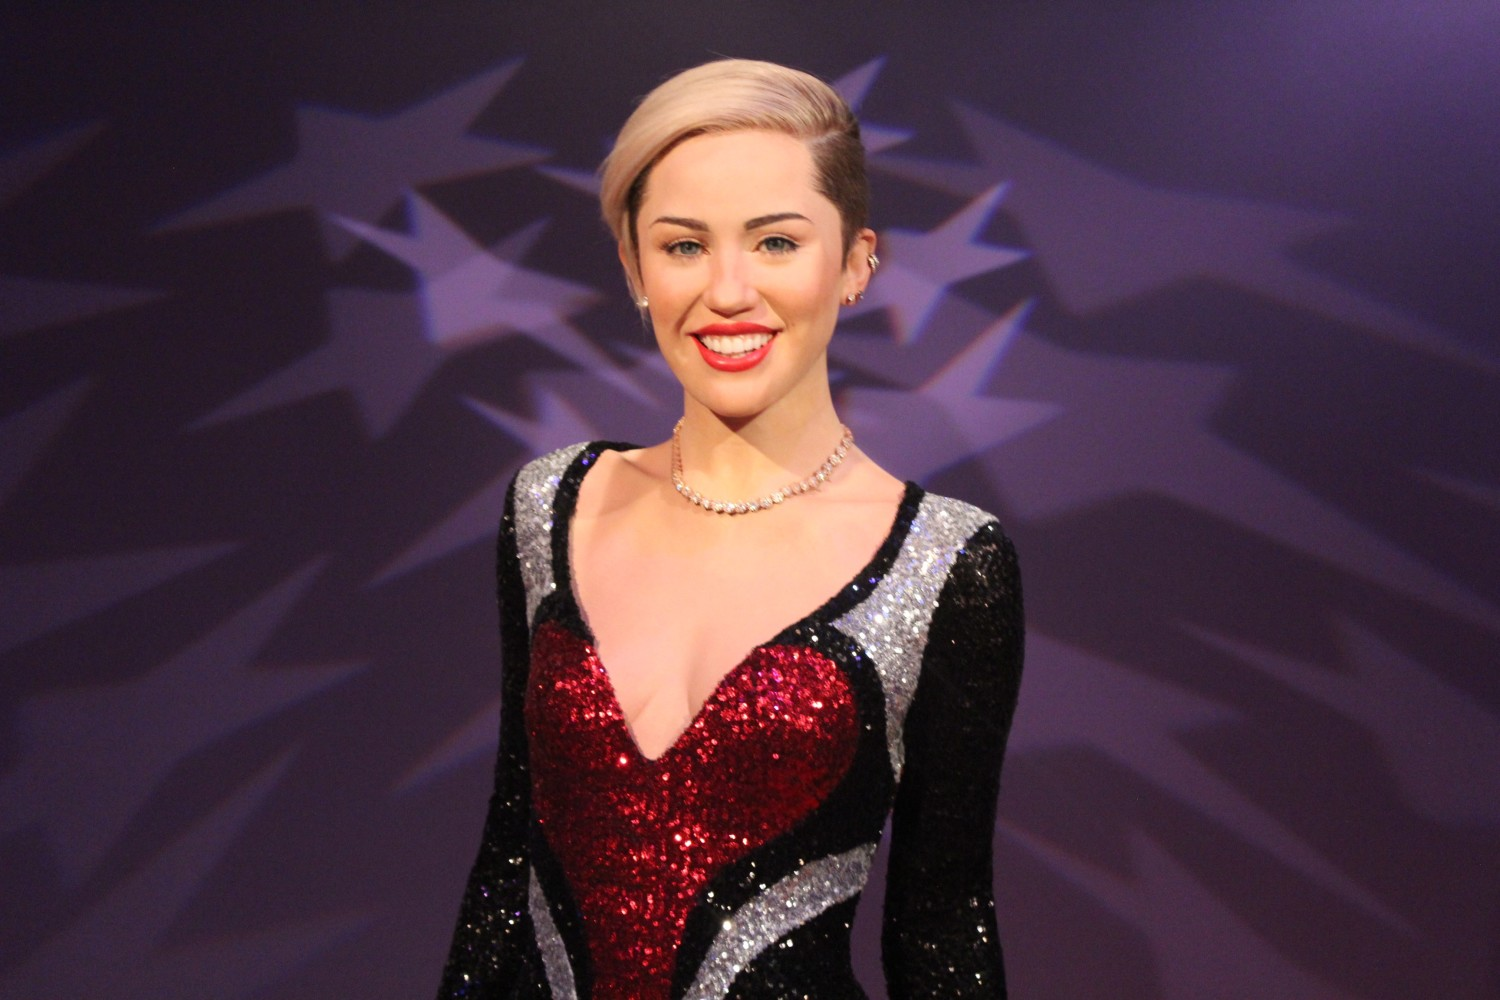 Miley Cyrus Wax Figure Madame Tussauds Washington D.C.